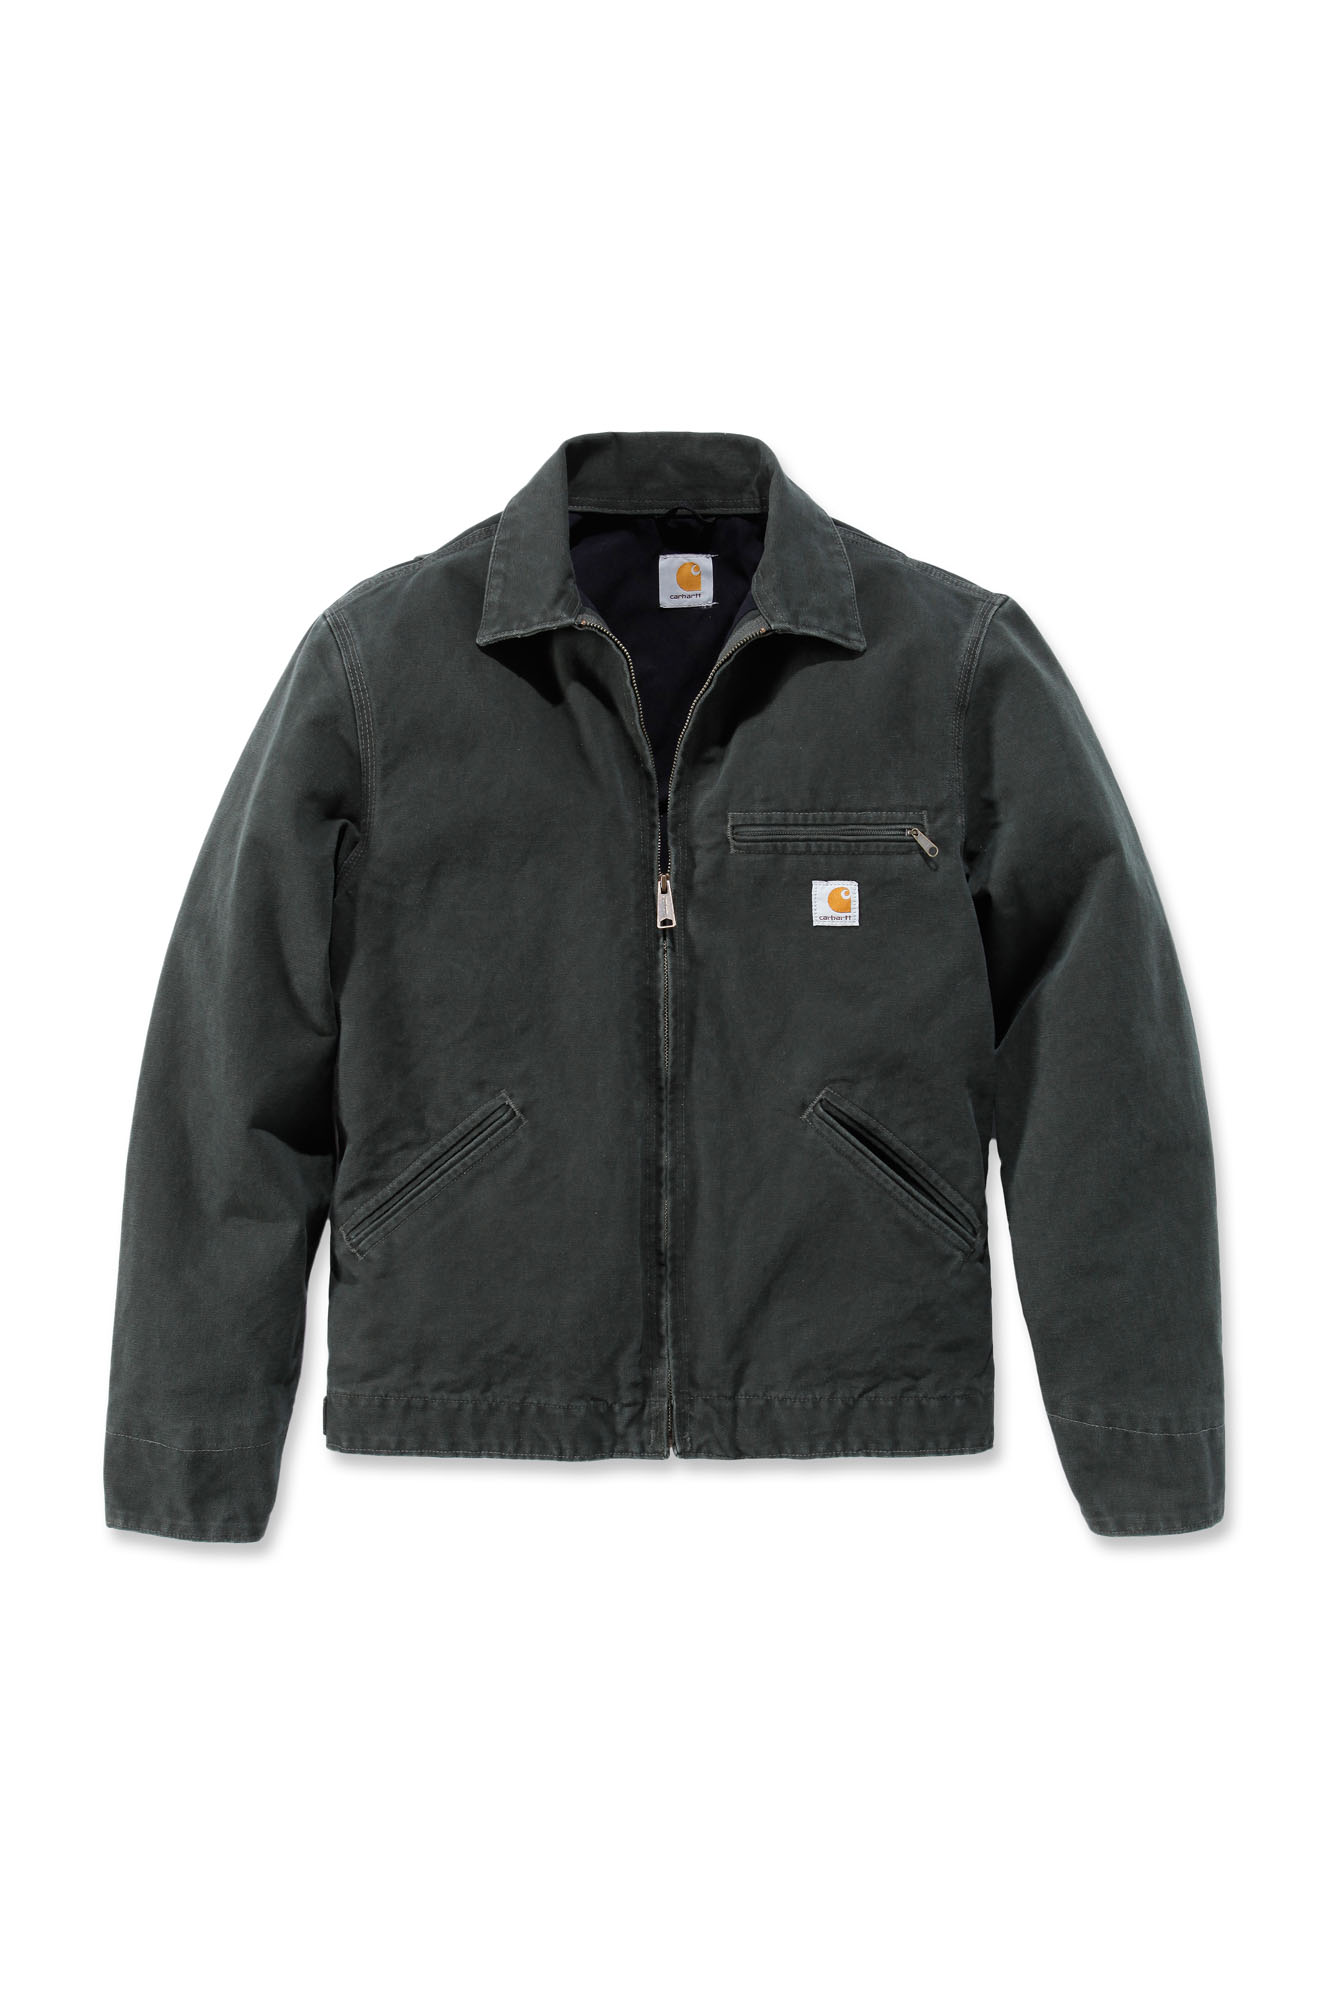 Carhartt EJ196 Lightweight Detroit Jacket Mens New Workwear Coat ...